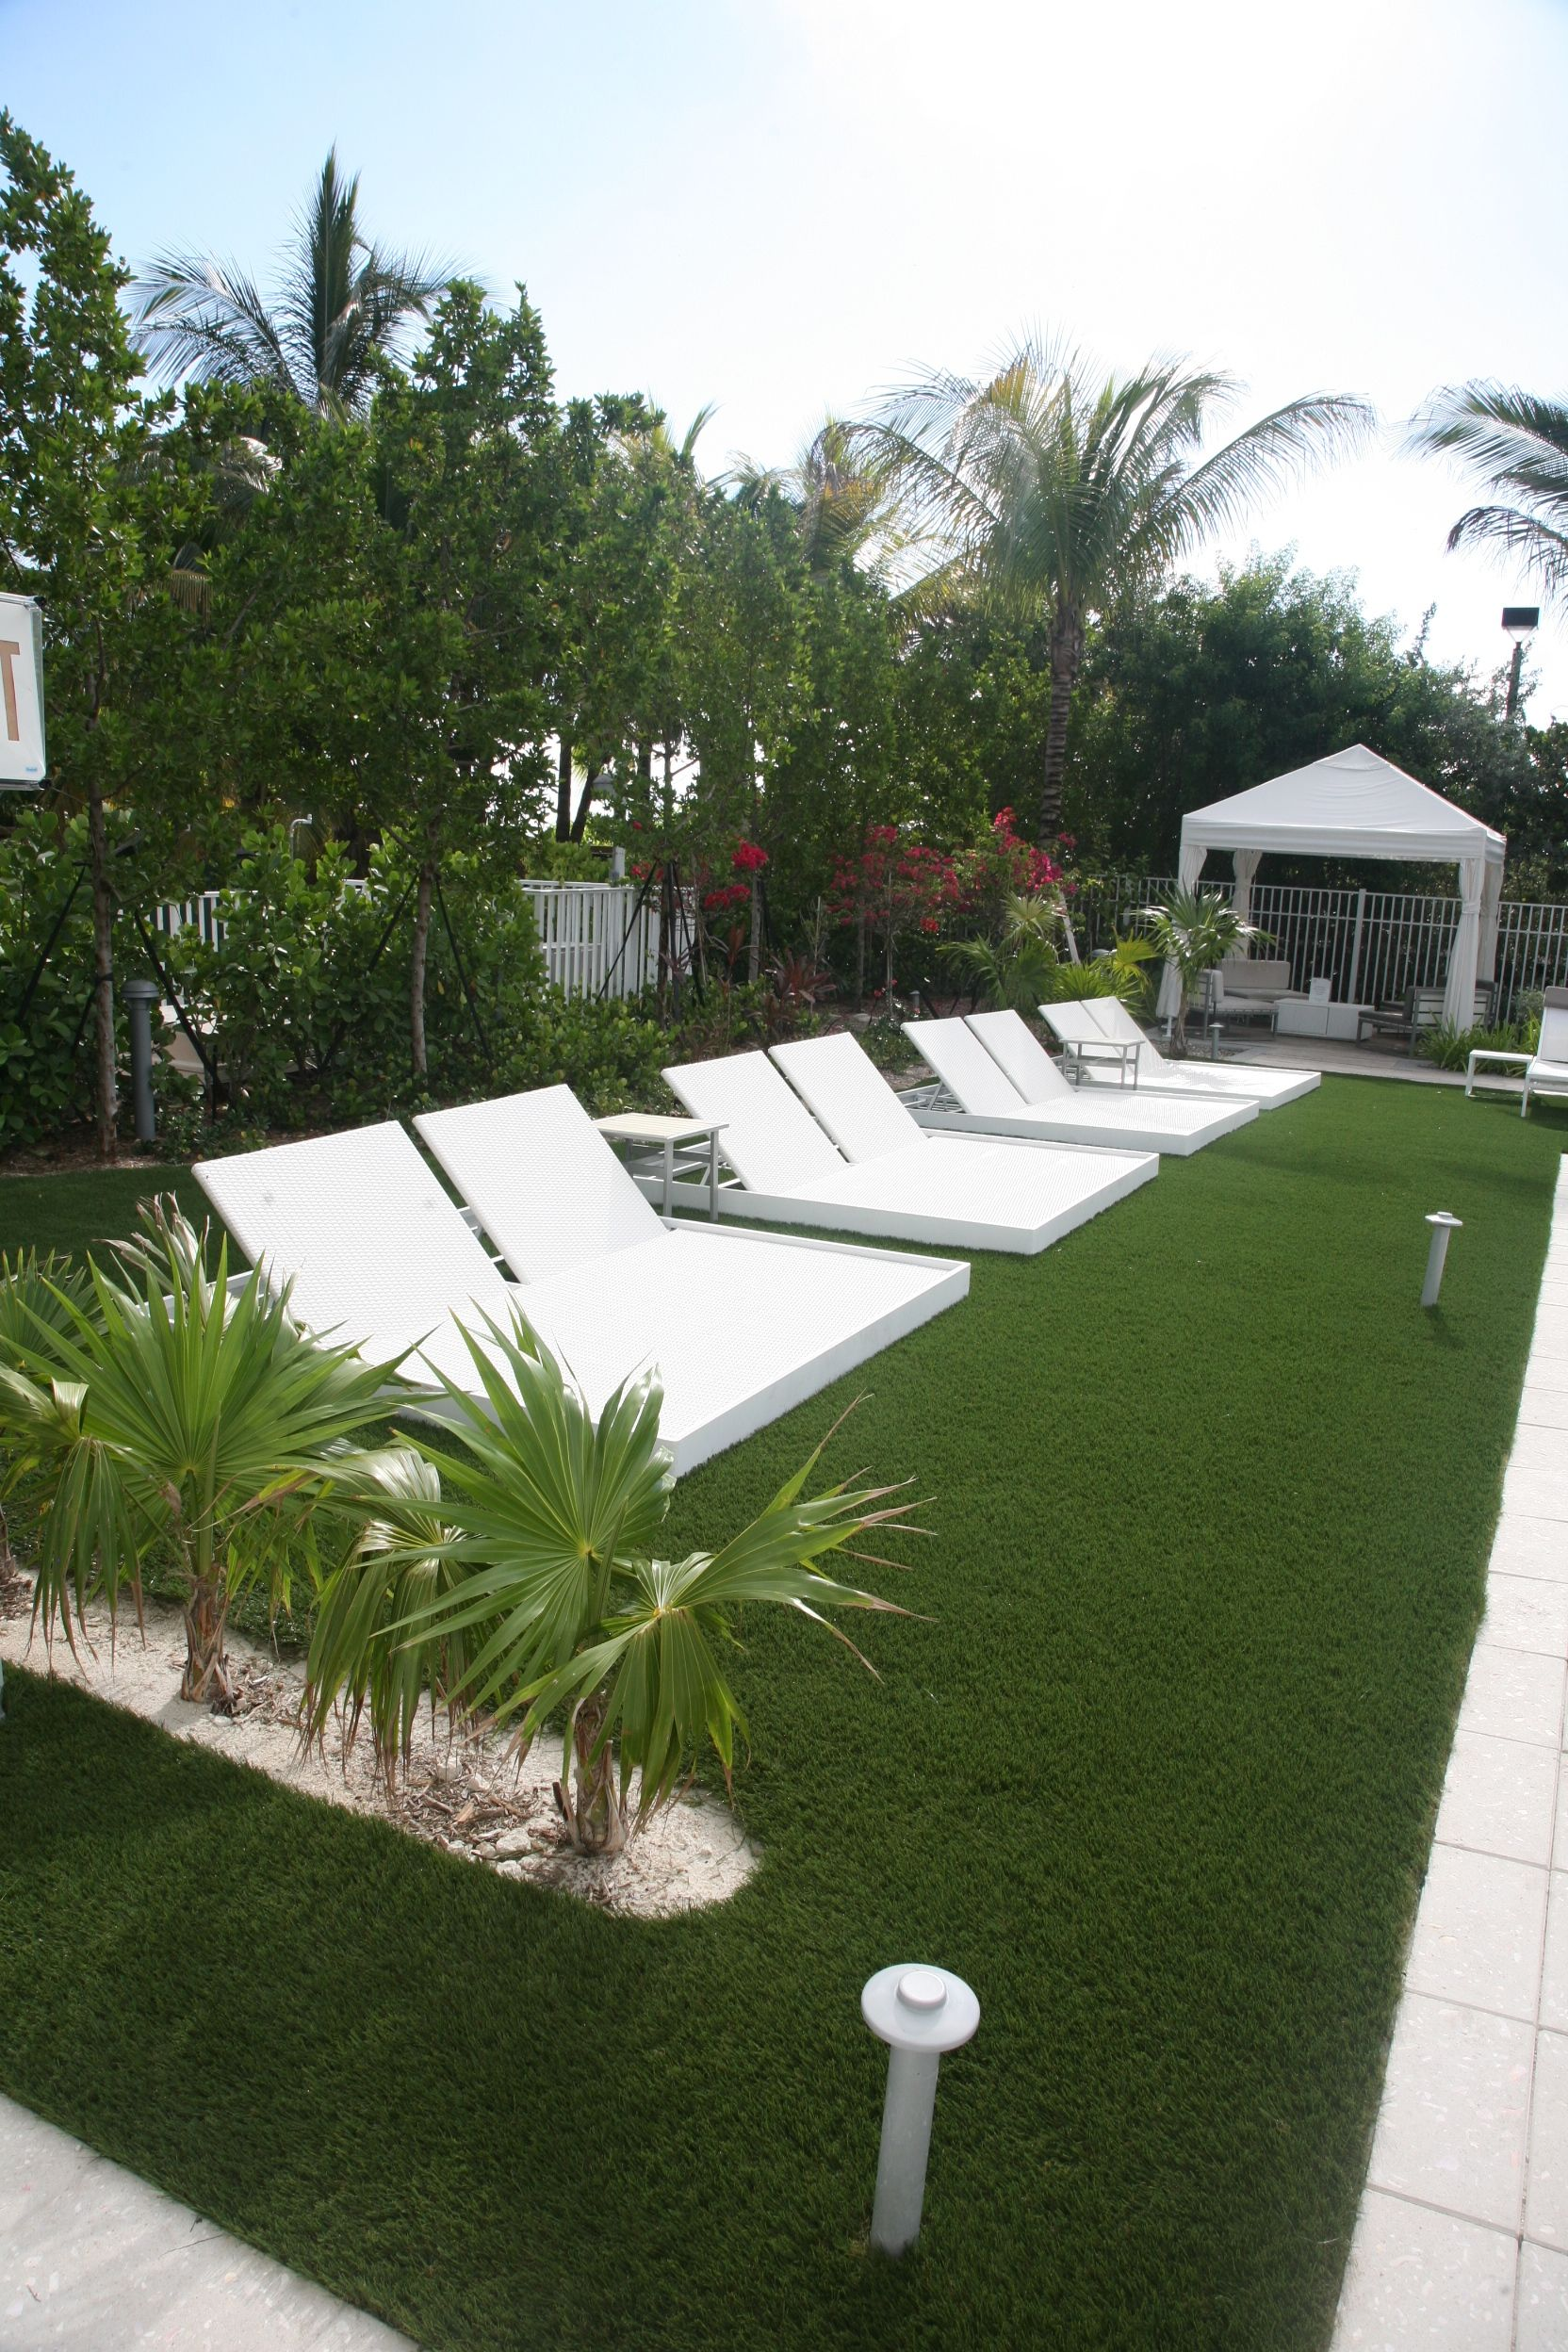 miami cadillac on rates lobby in information z hotel beach reviews club mid hotels guestroom